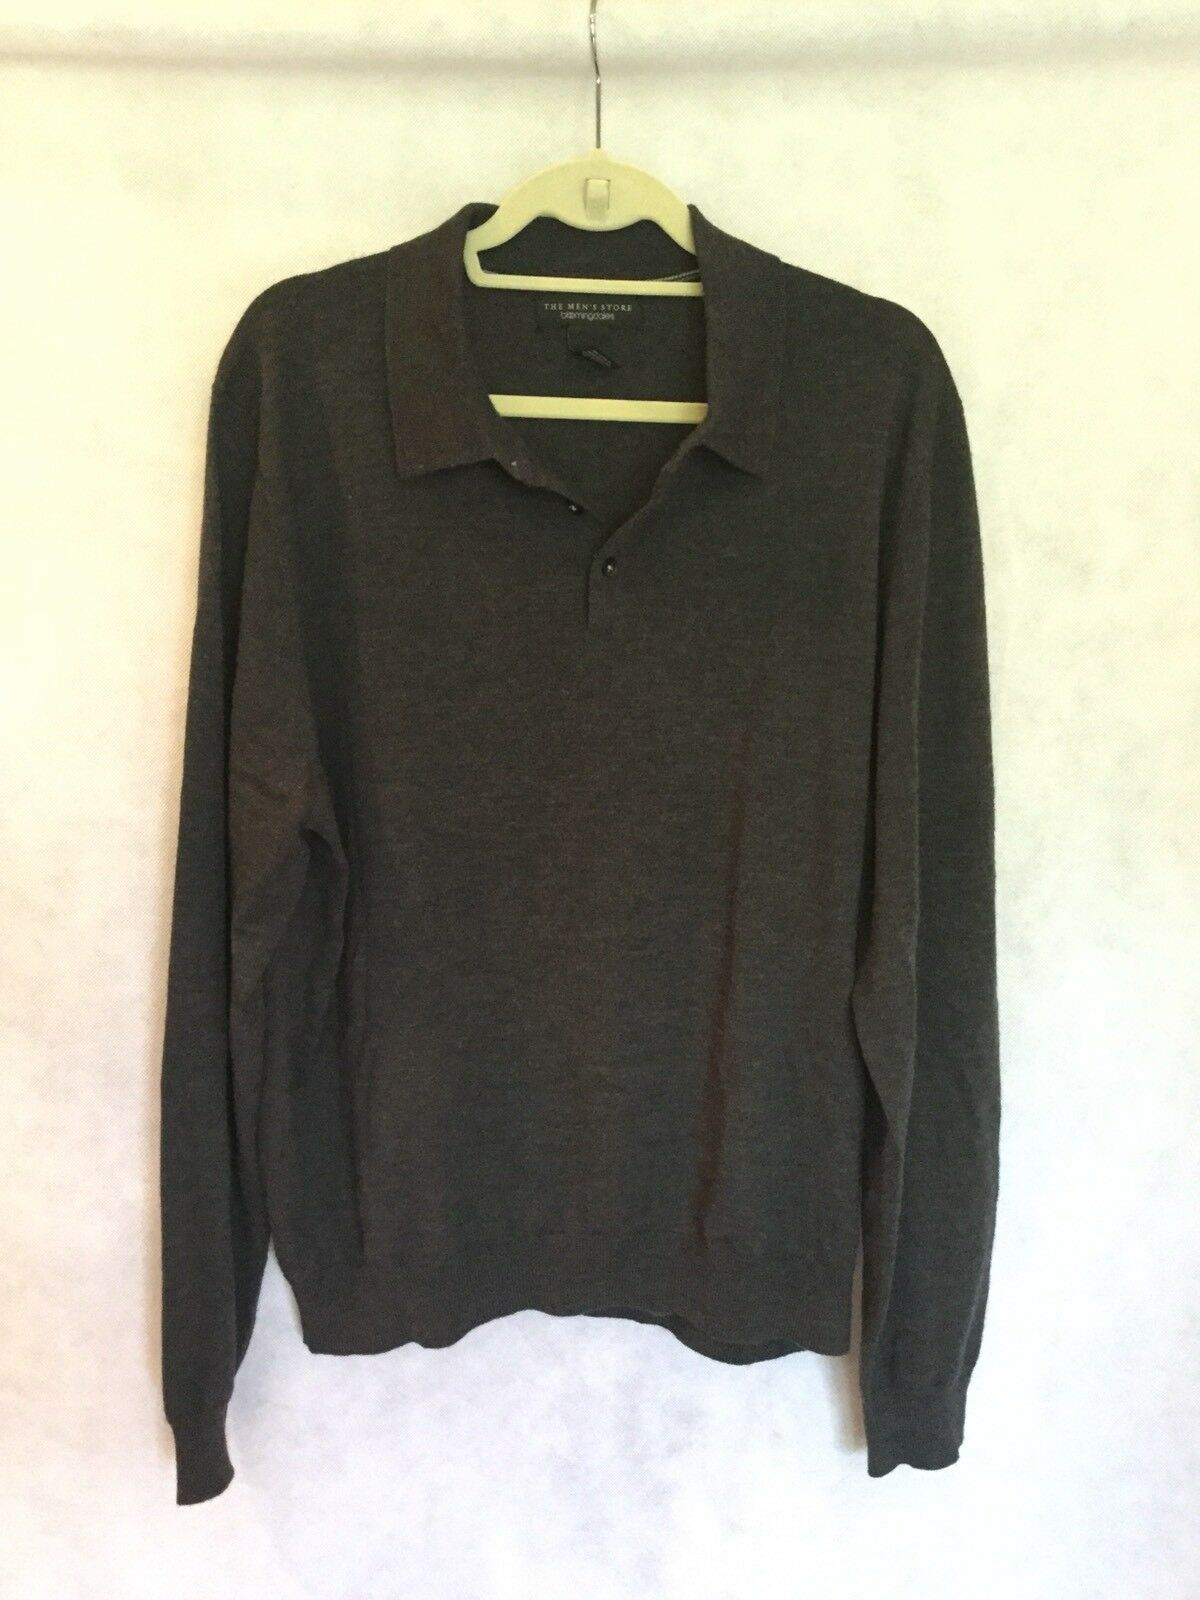 """BLOOMINGDALES """"THE MEN'S STORE"""" CHARCOAL WOOL LONG SLEEVE COLLARED SWEATER-SZ XL"""